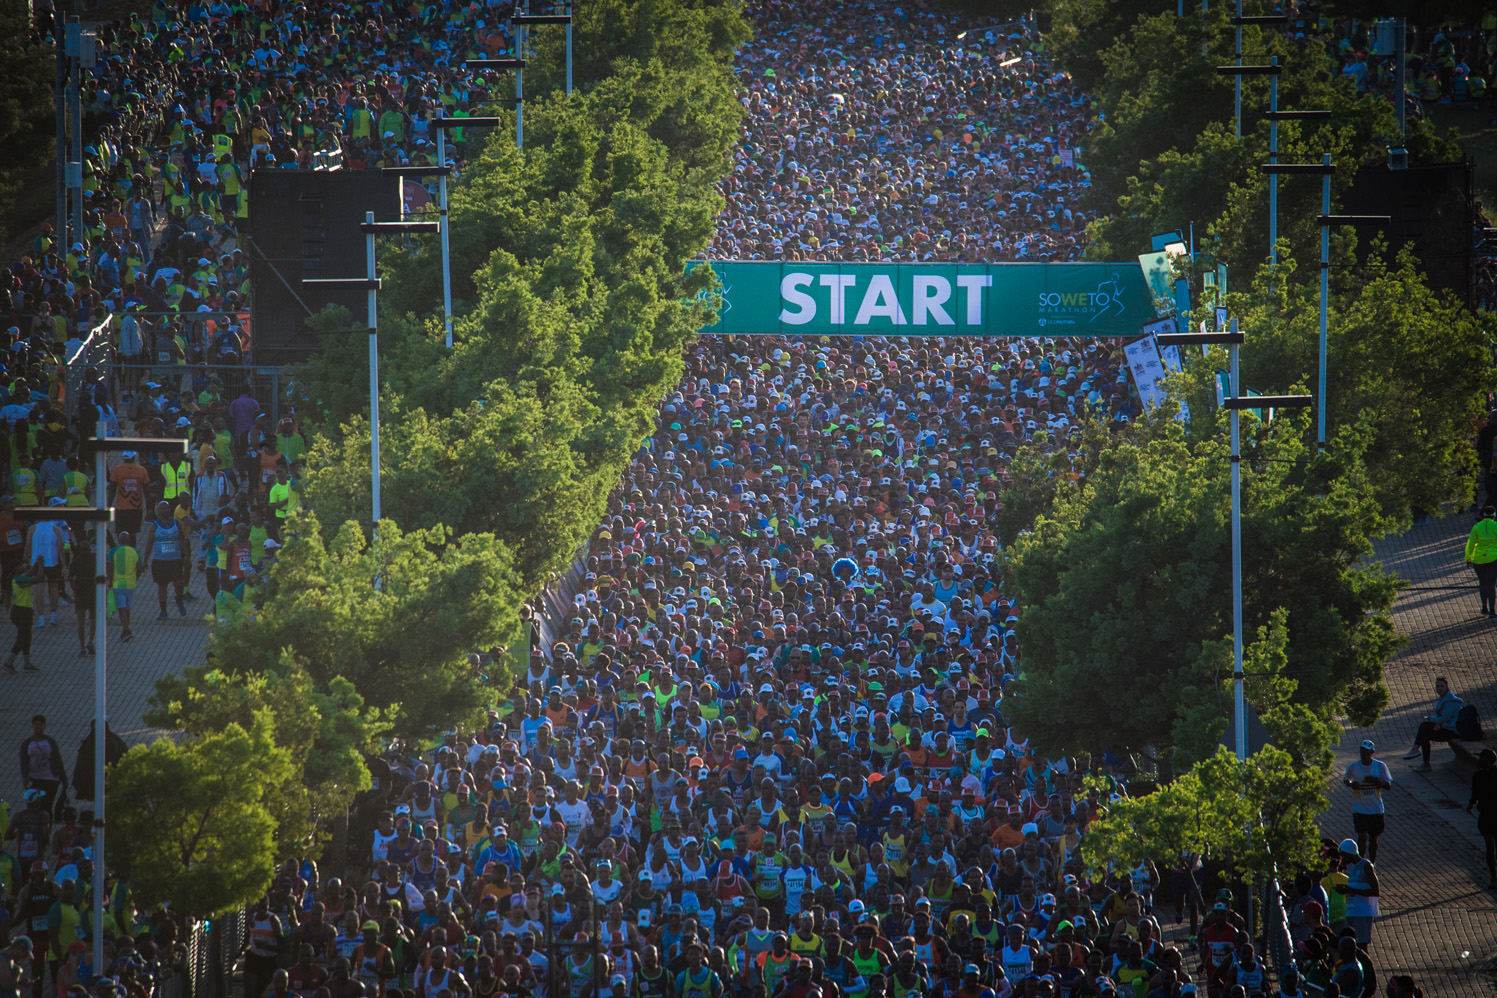 3 November 2019: The starting line of the 2019 Soweto Marathon at FNB Stadium in Soweto, south of Johannesburg, South Africa. (Photograph courtesy of Jetline Action Photo)